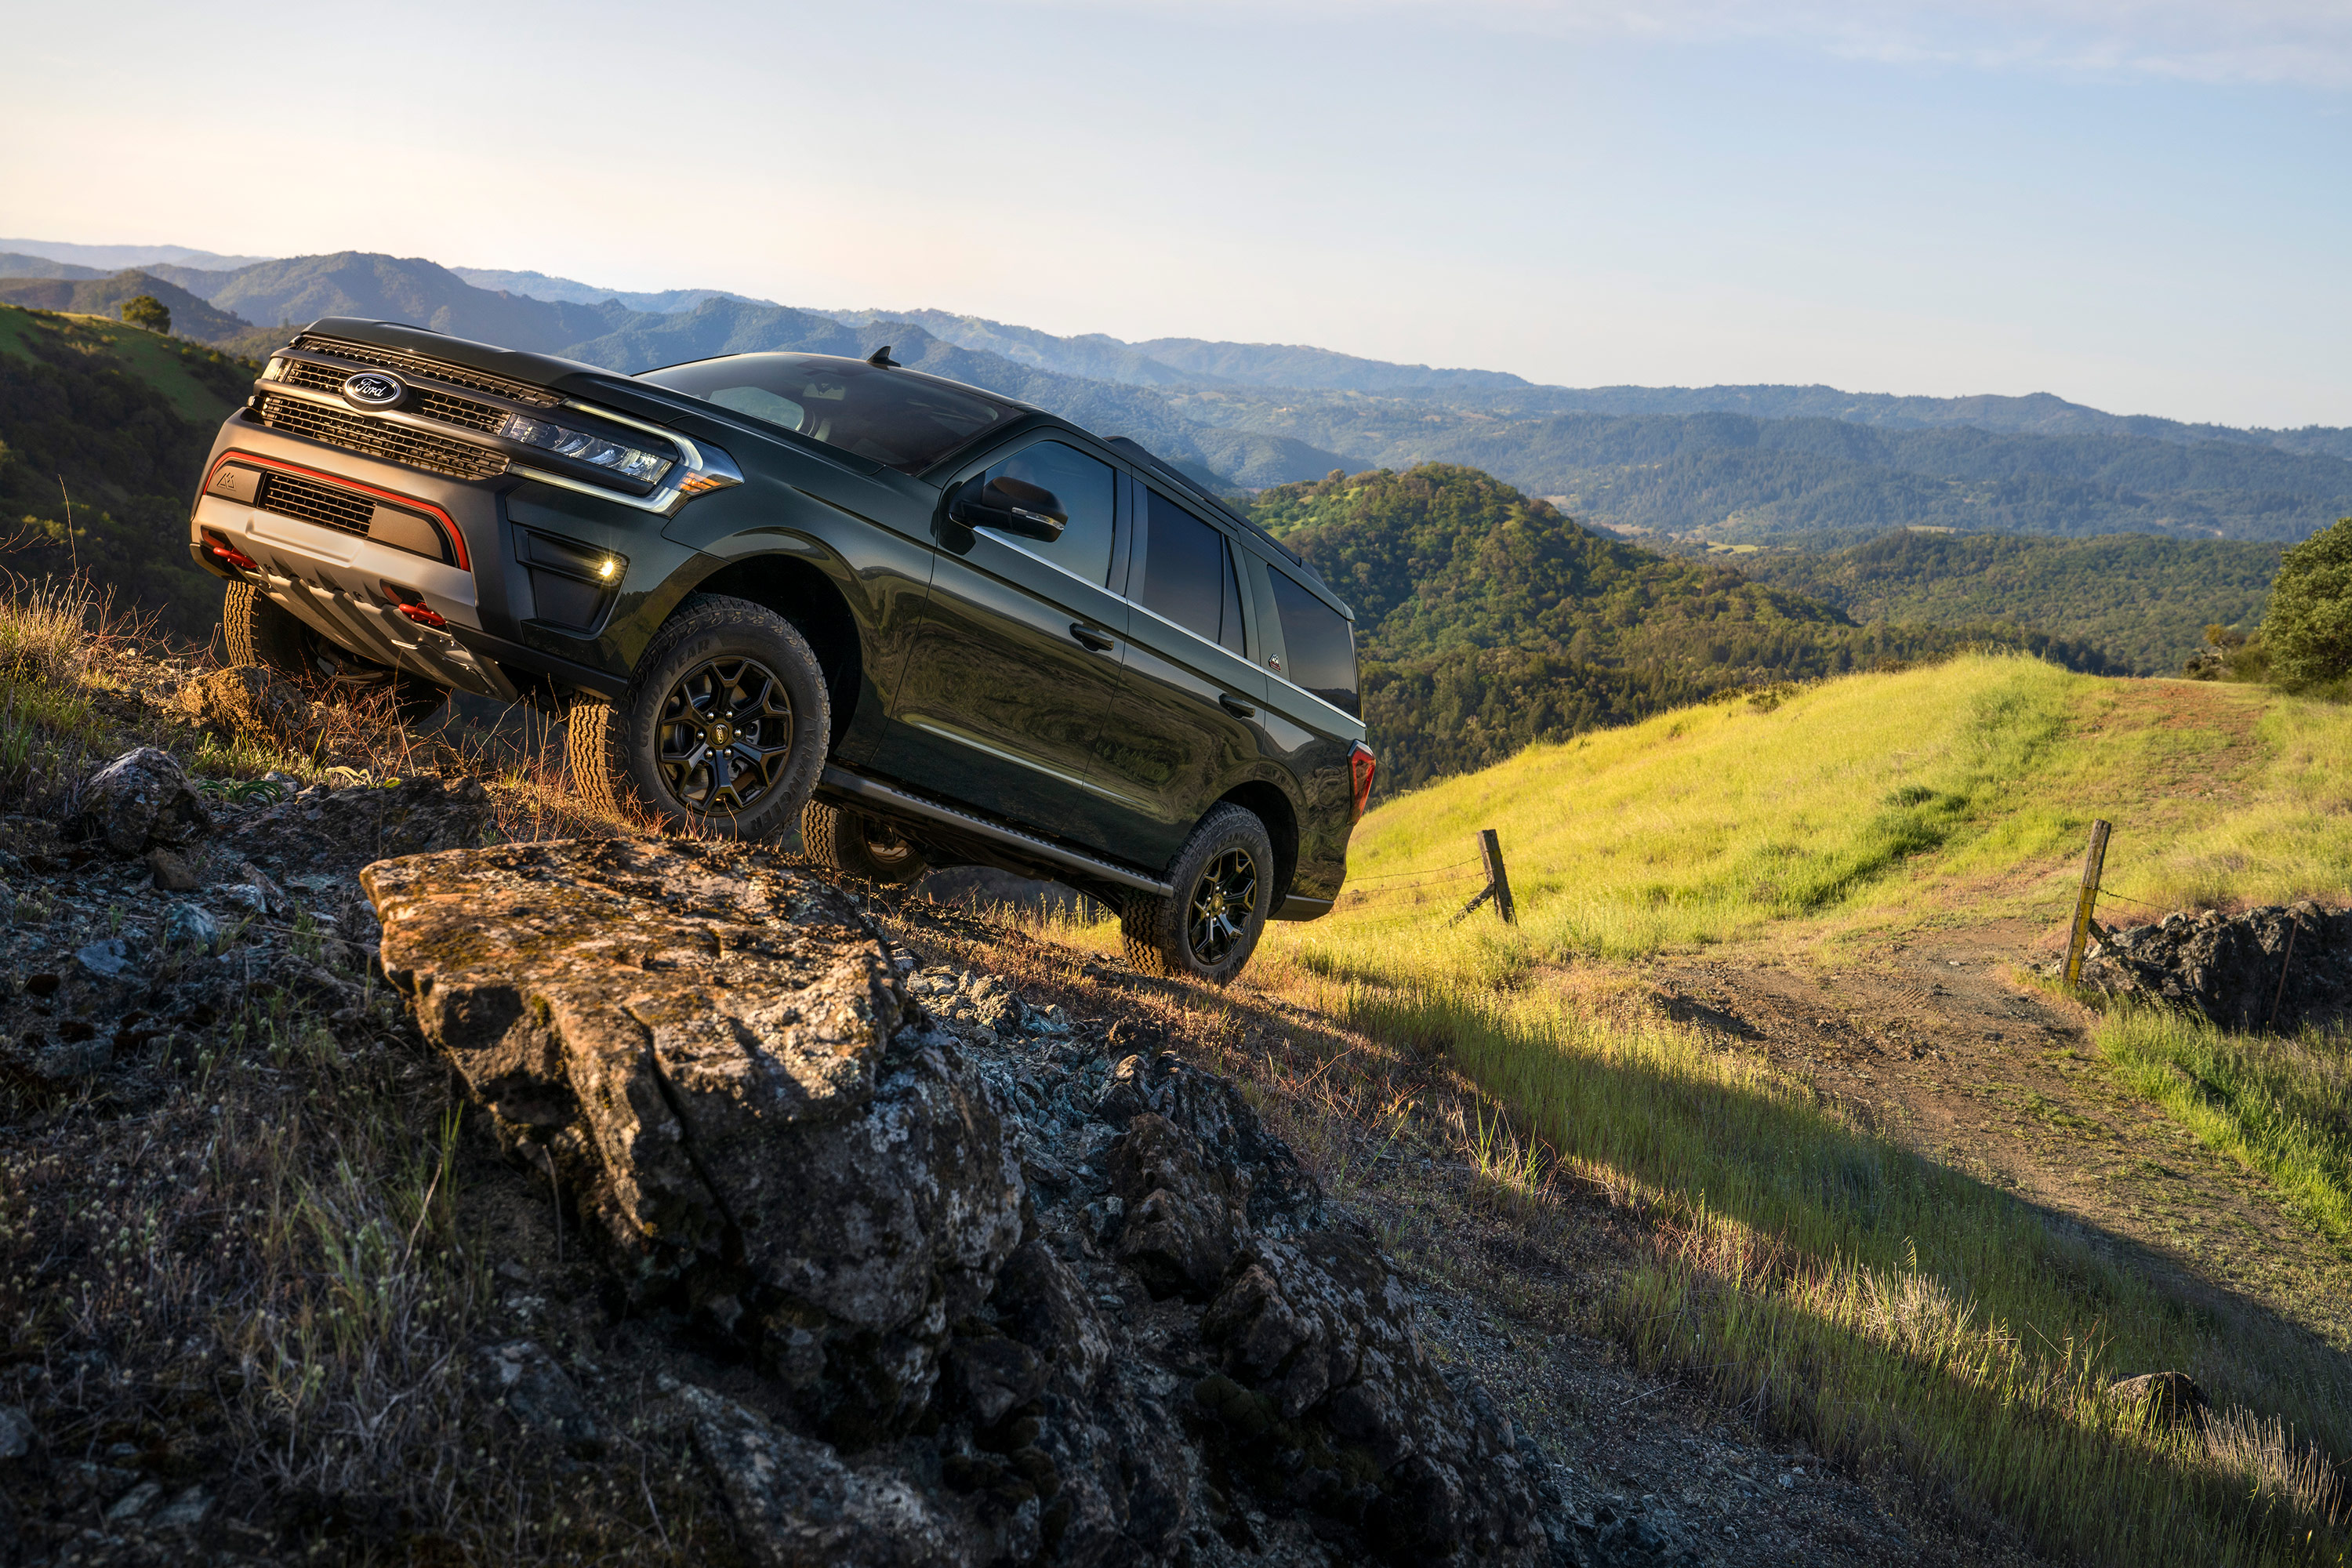 2022 Ford Expedition - Timberline